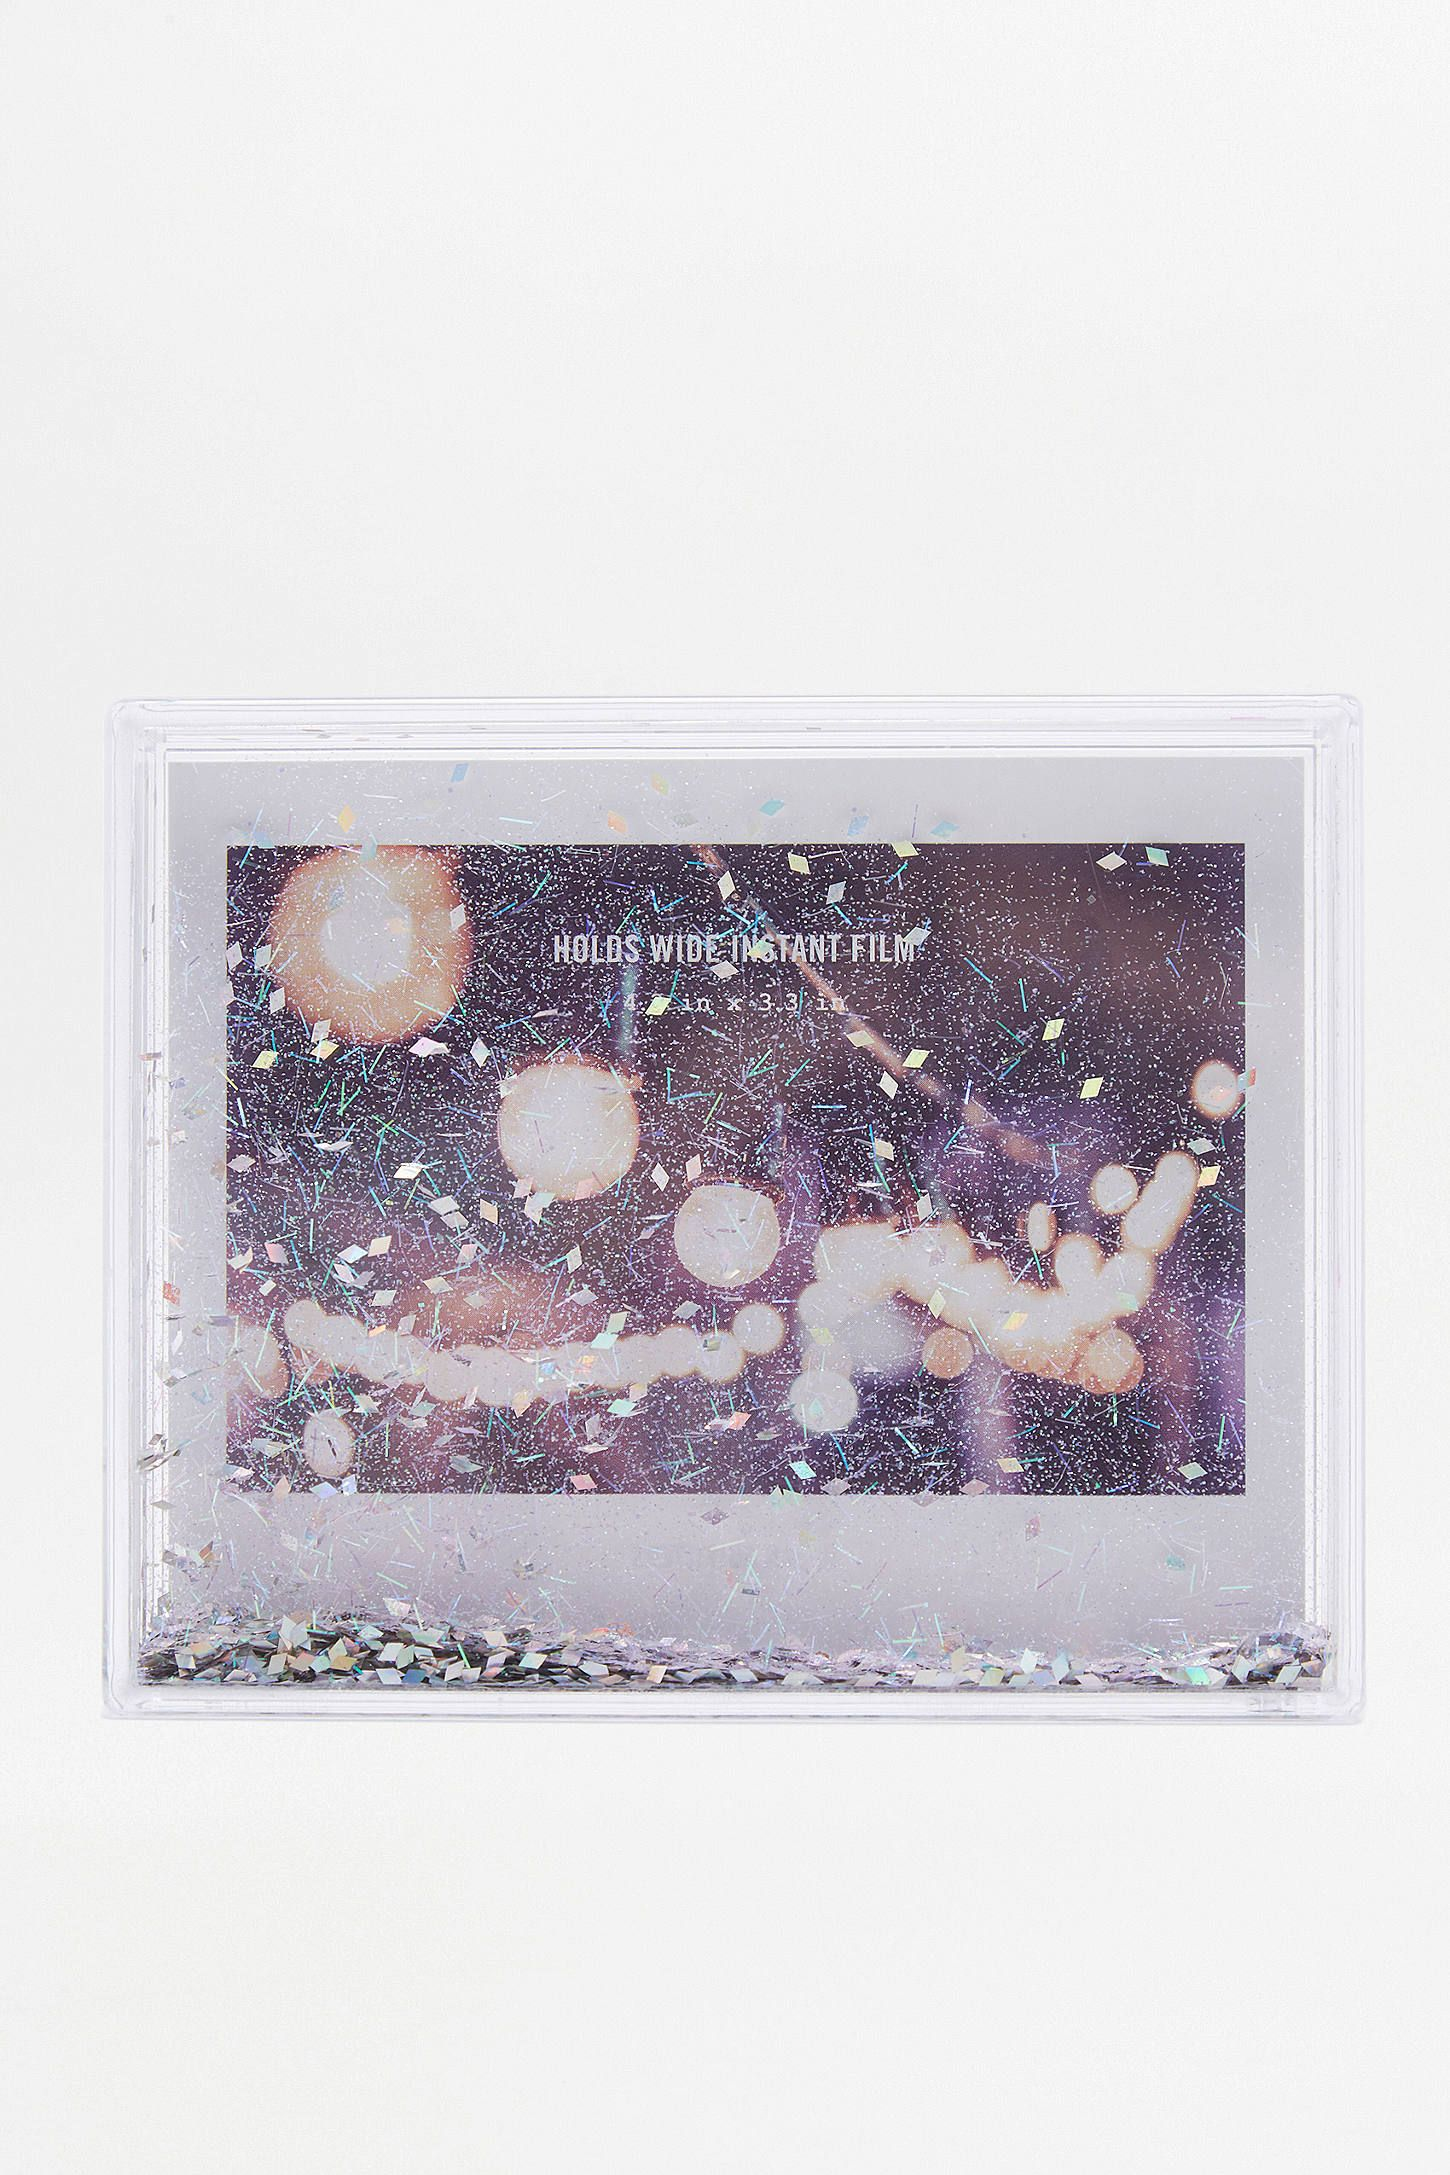 Holographic glitter instax wide frame instax wide shop holographic glitter instax wide frame at urban outfitters today we carry all the latest jeuxipadfo Images